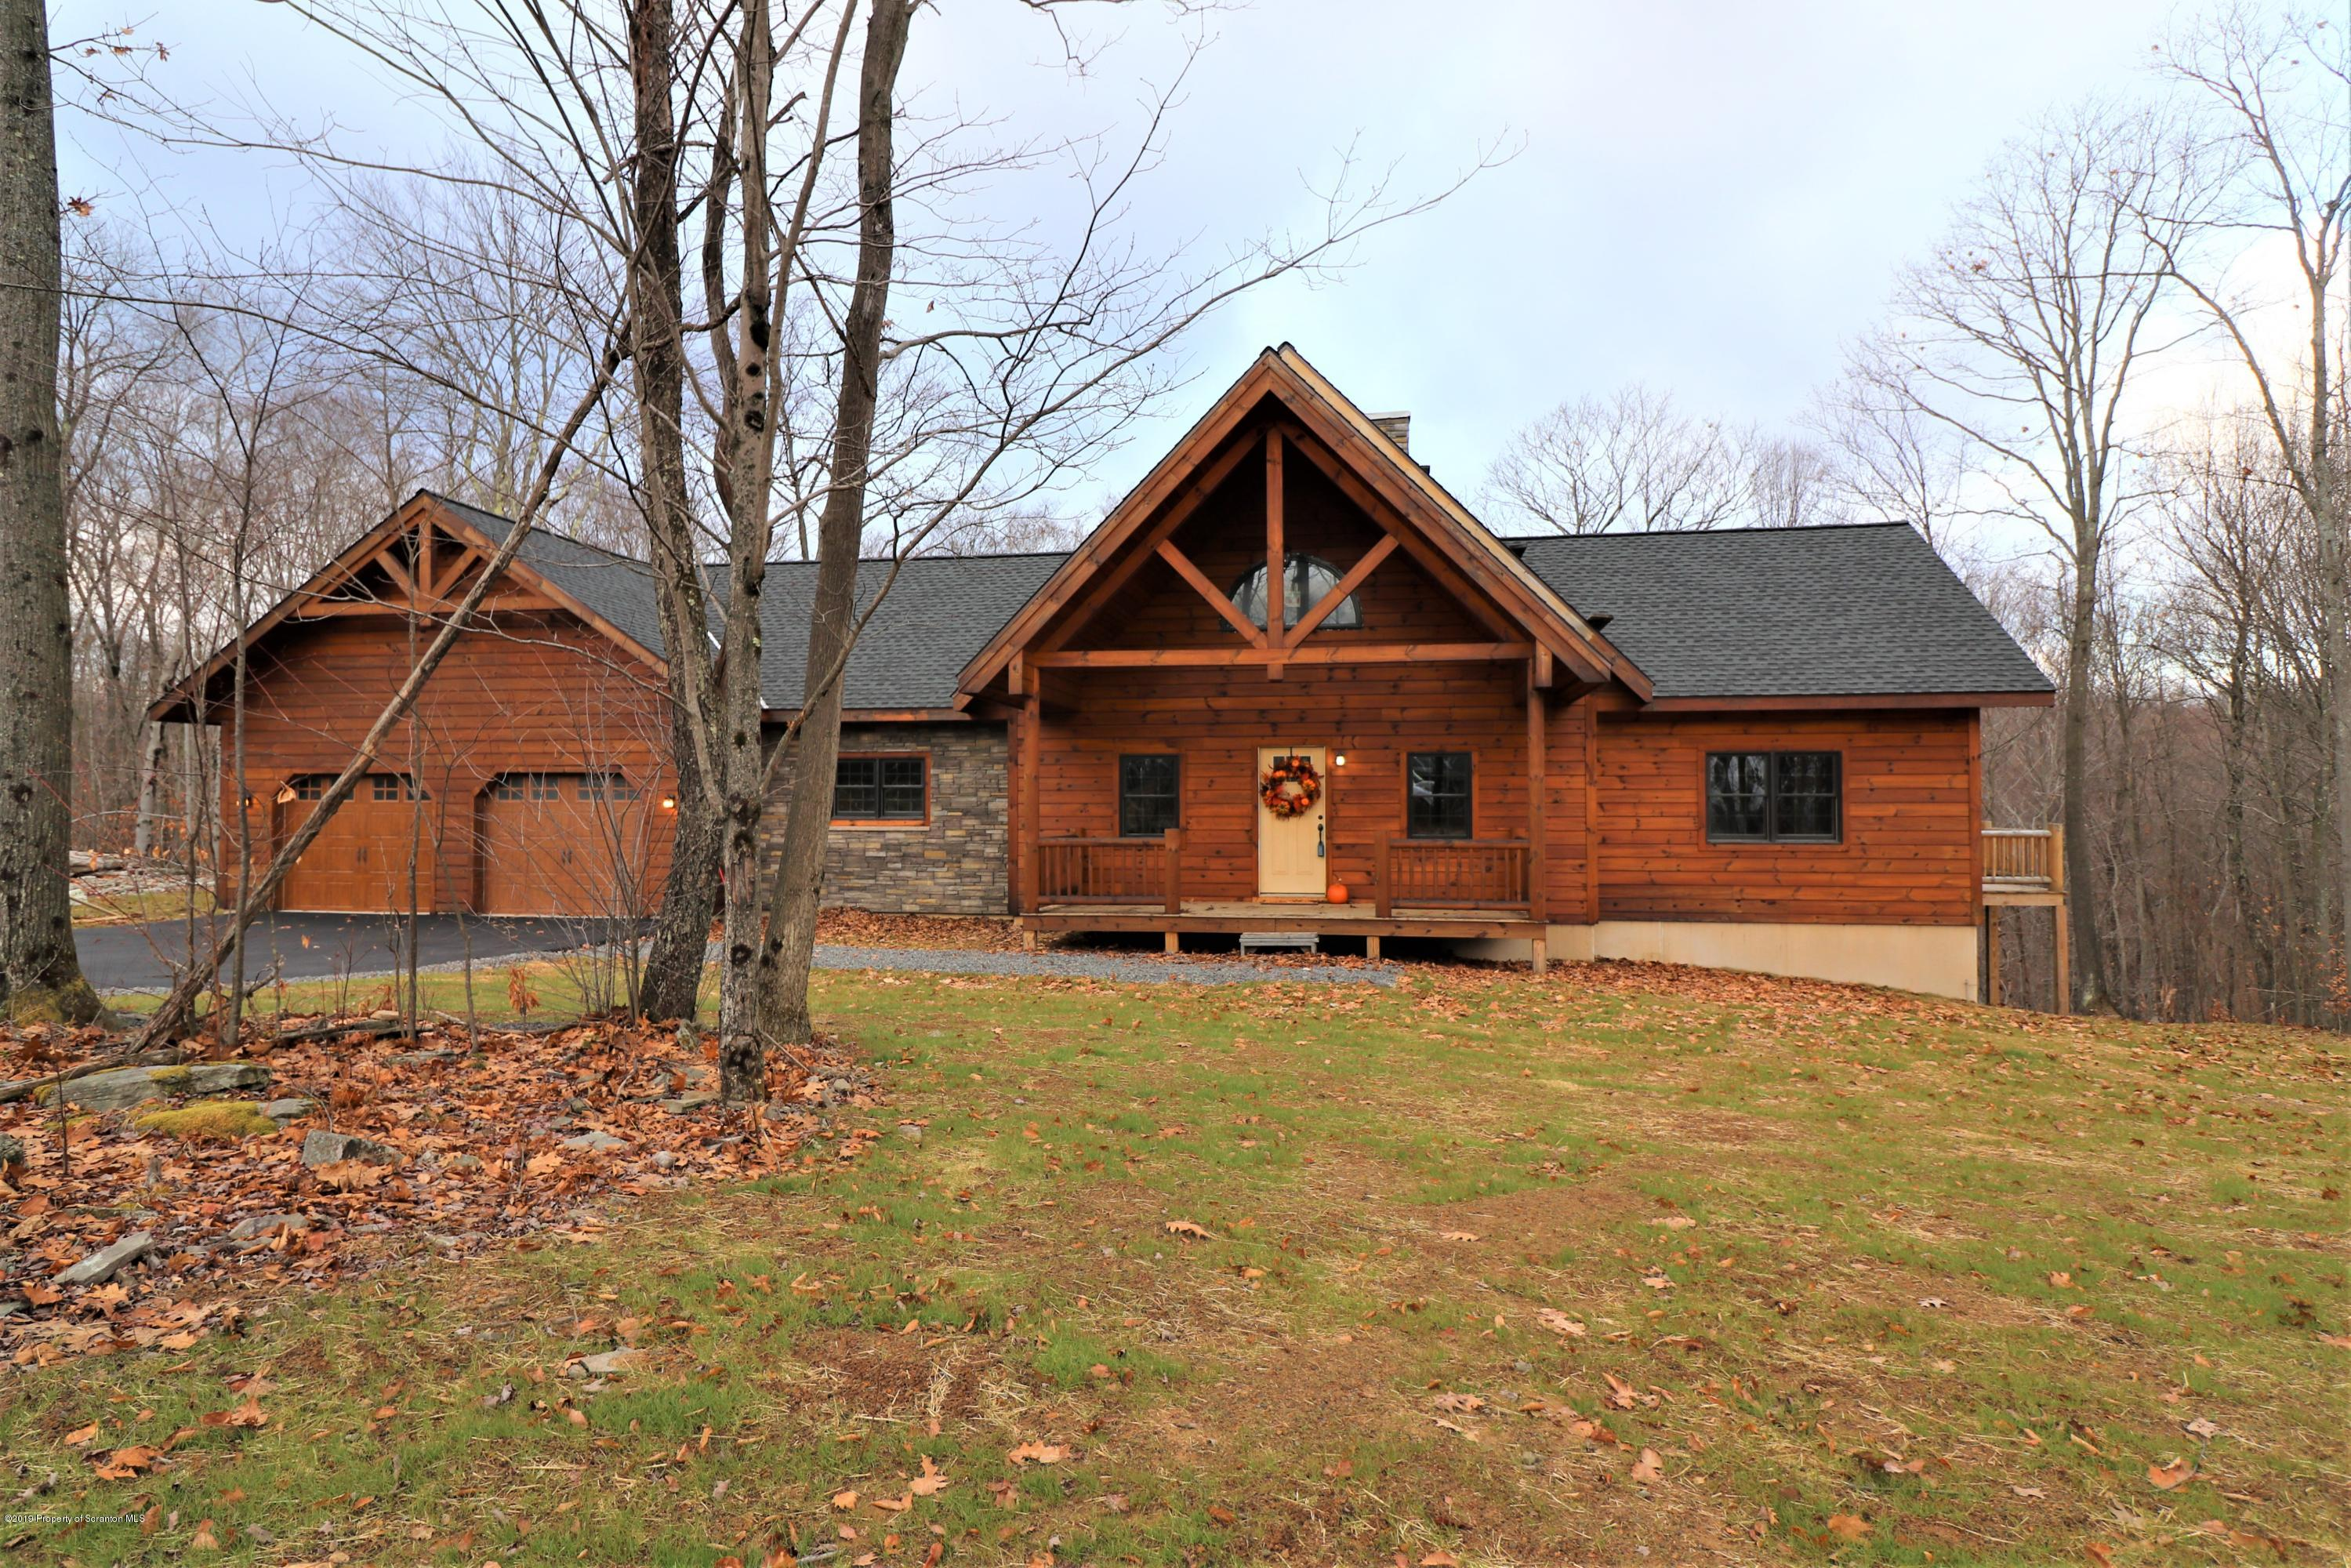 103 BROOKVIEW COURT, Roaring Brook Twp, Pennsylvania 18444, 4 Bedrooms Bedrooms, 7 Rooms Rooms,3 BathroomsBathrooms,Single Family,For Sale,BROOKVIEW,21-3328